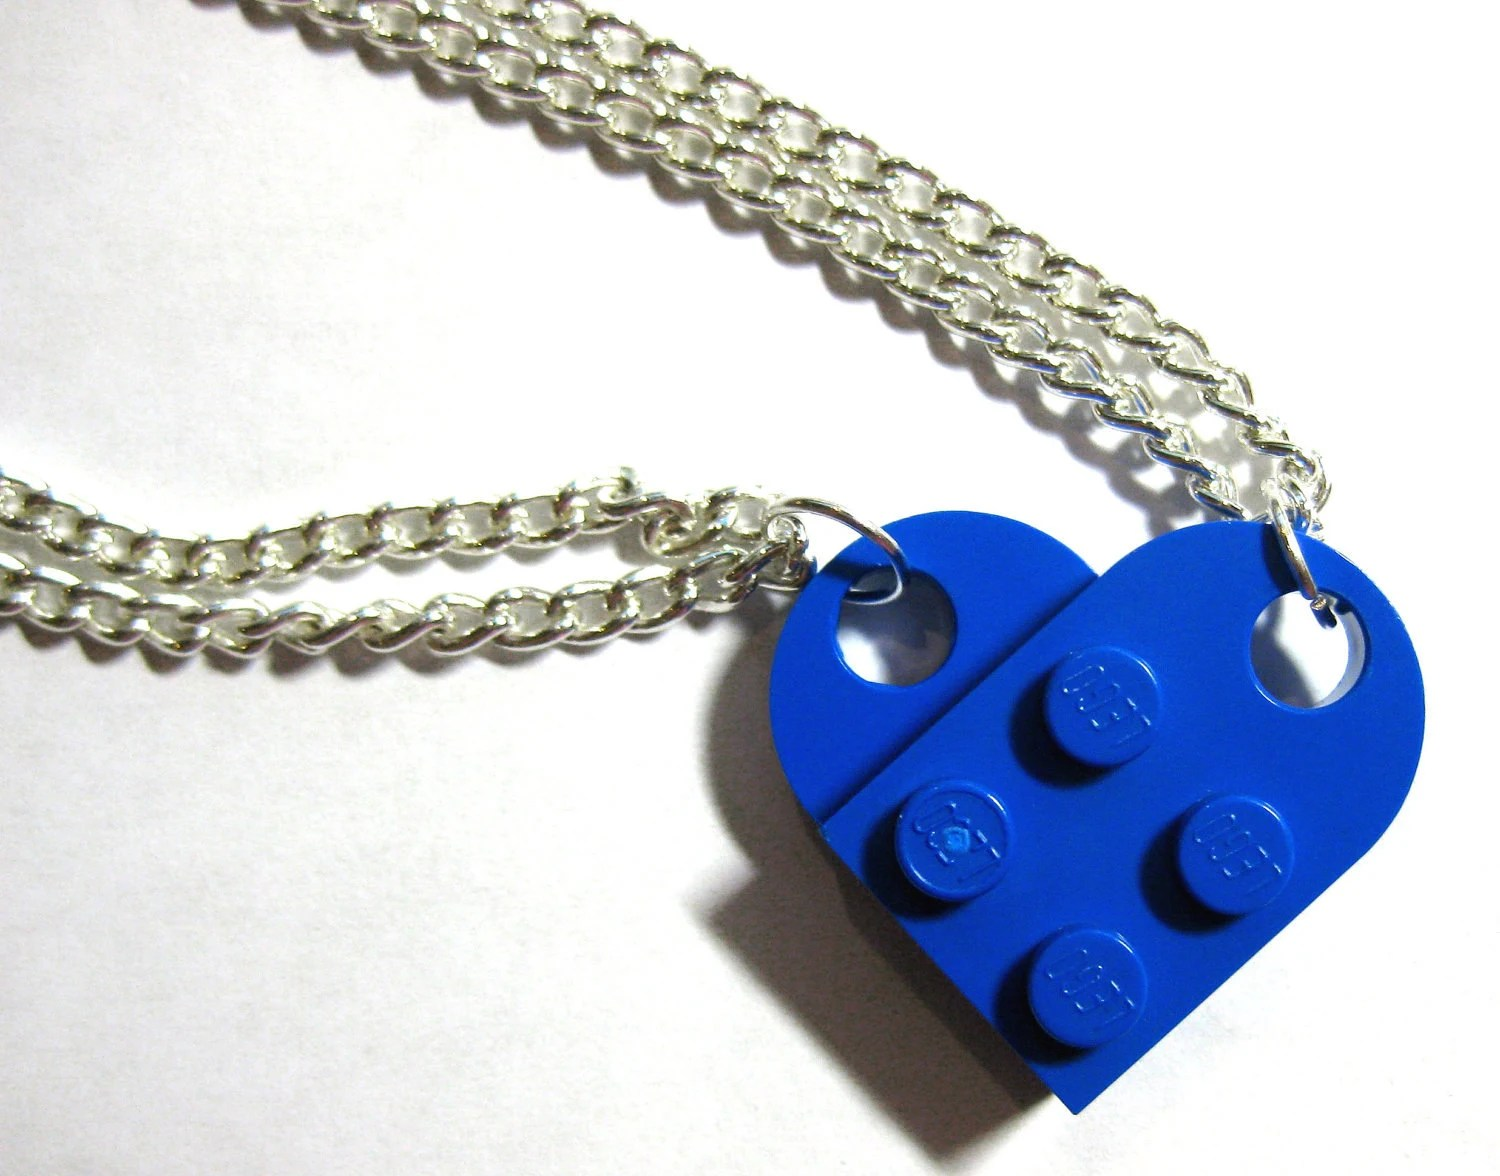 DOUBLE chain LEGO Heart Necklace, Lego Heart Friendship Necklace - Gift For Couples, Family, Friends, BFFs - 2 necklaces make 1 Whole Heart